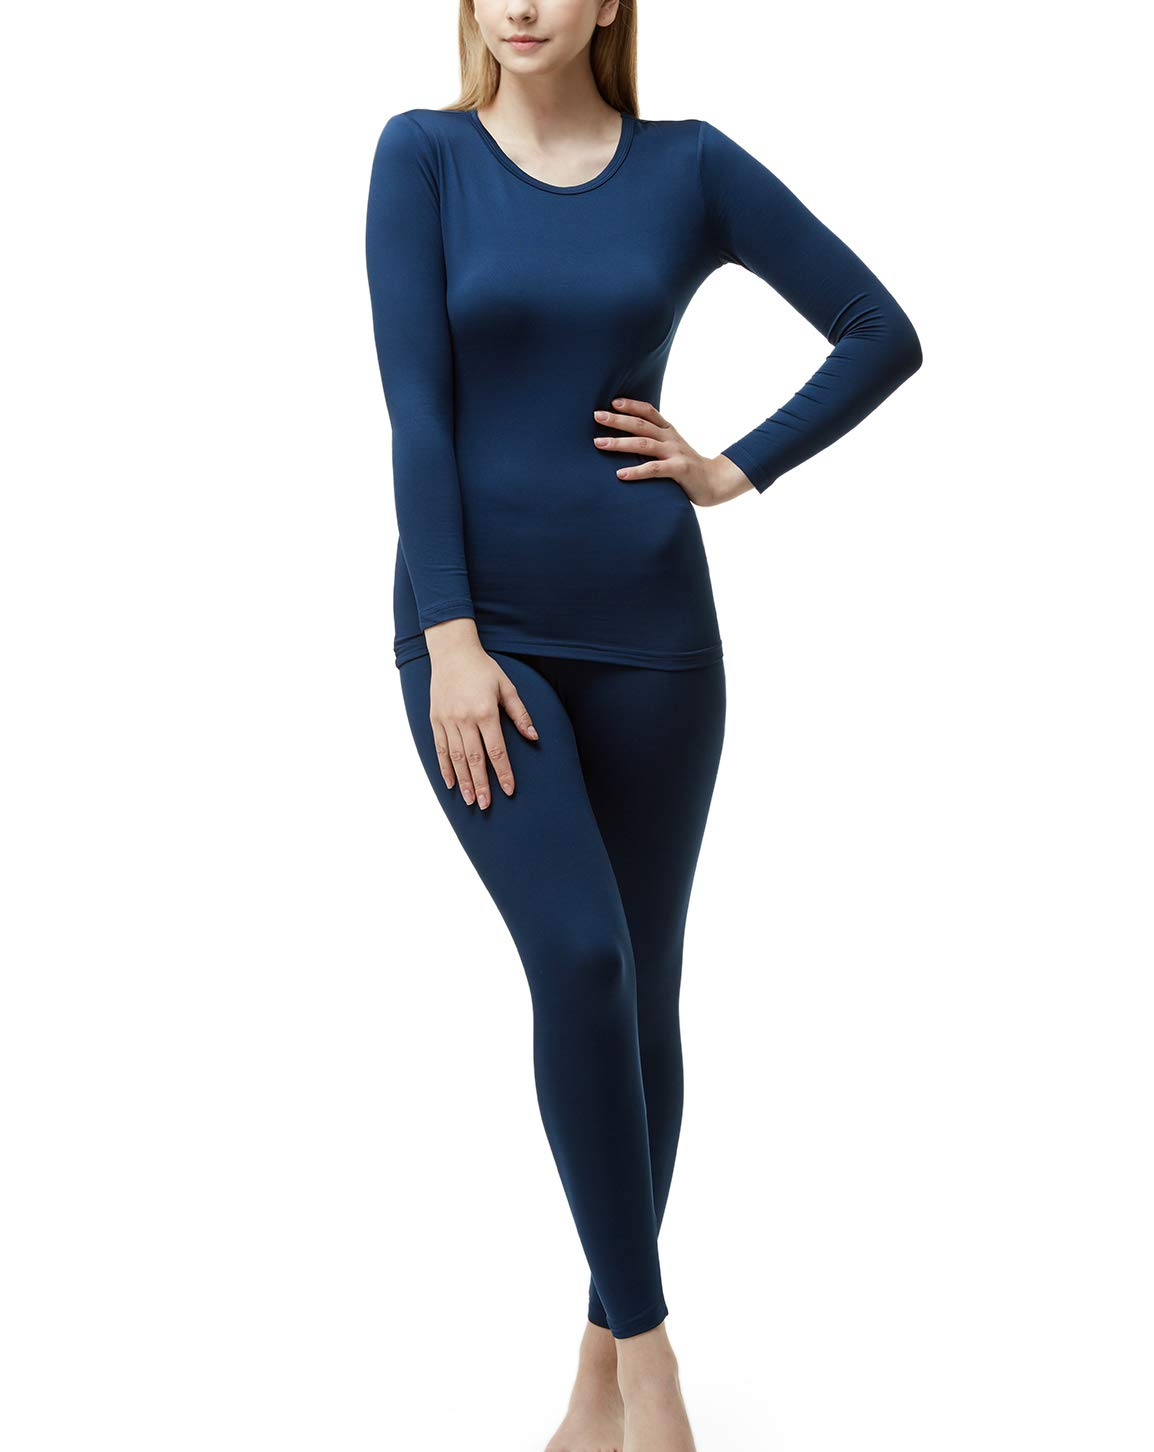 TSLA Blank Women's Top & Bottom Set w Microfiber, Thermal Set(whs200) - Navy, Large by TSLA